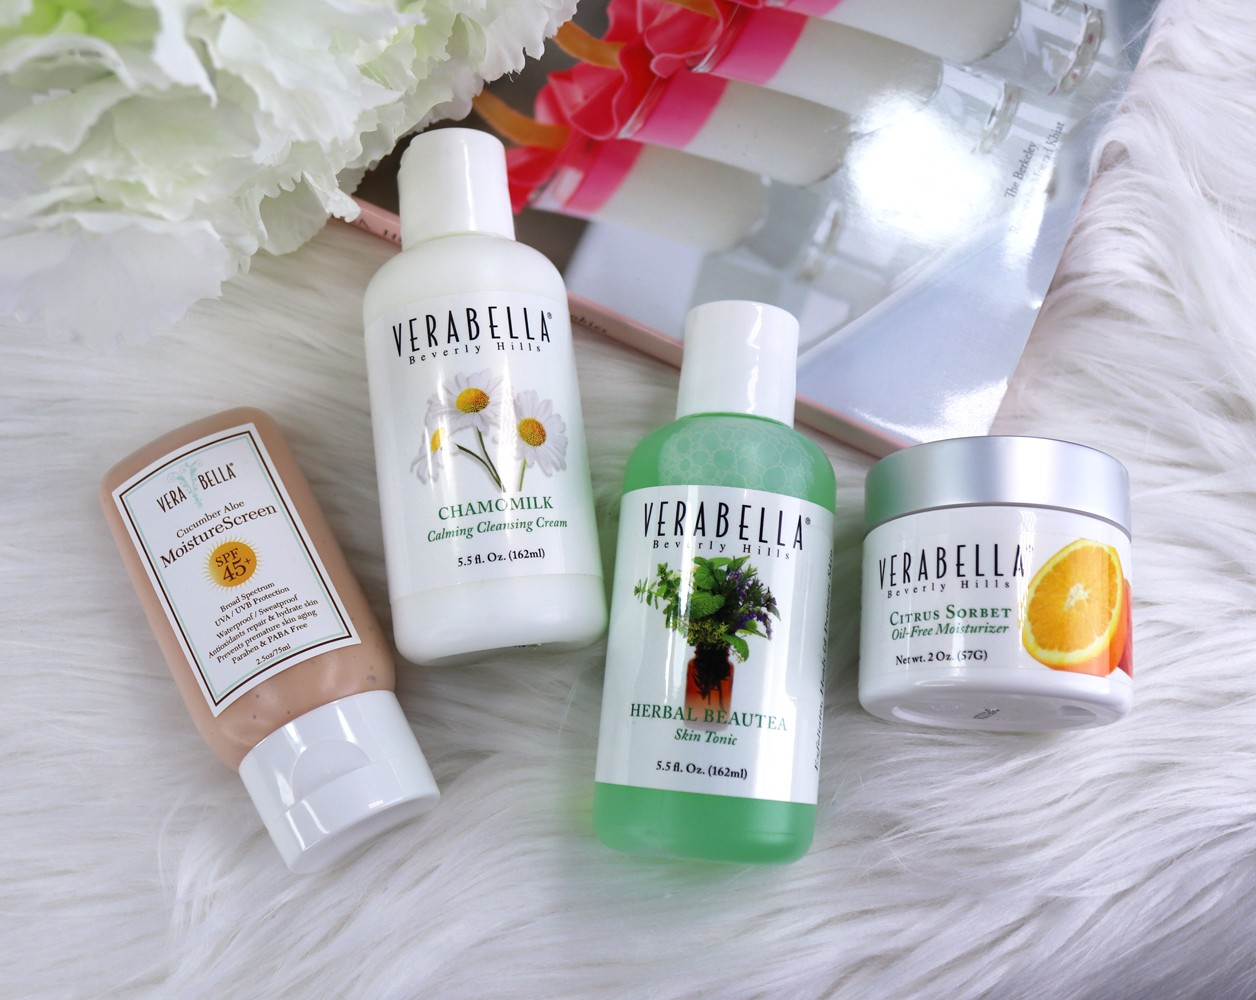 Verabella vegan and cruelty free skincare and Amazon gift card giveaway